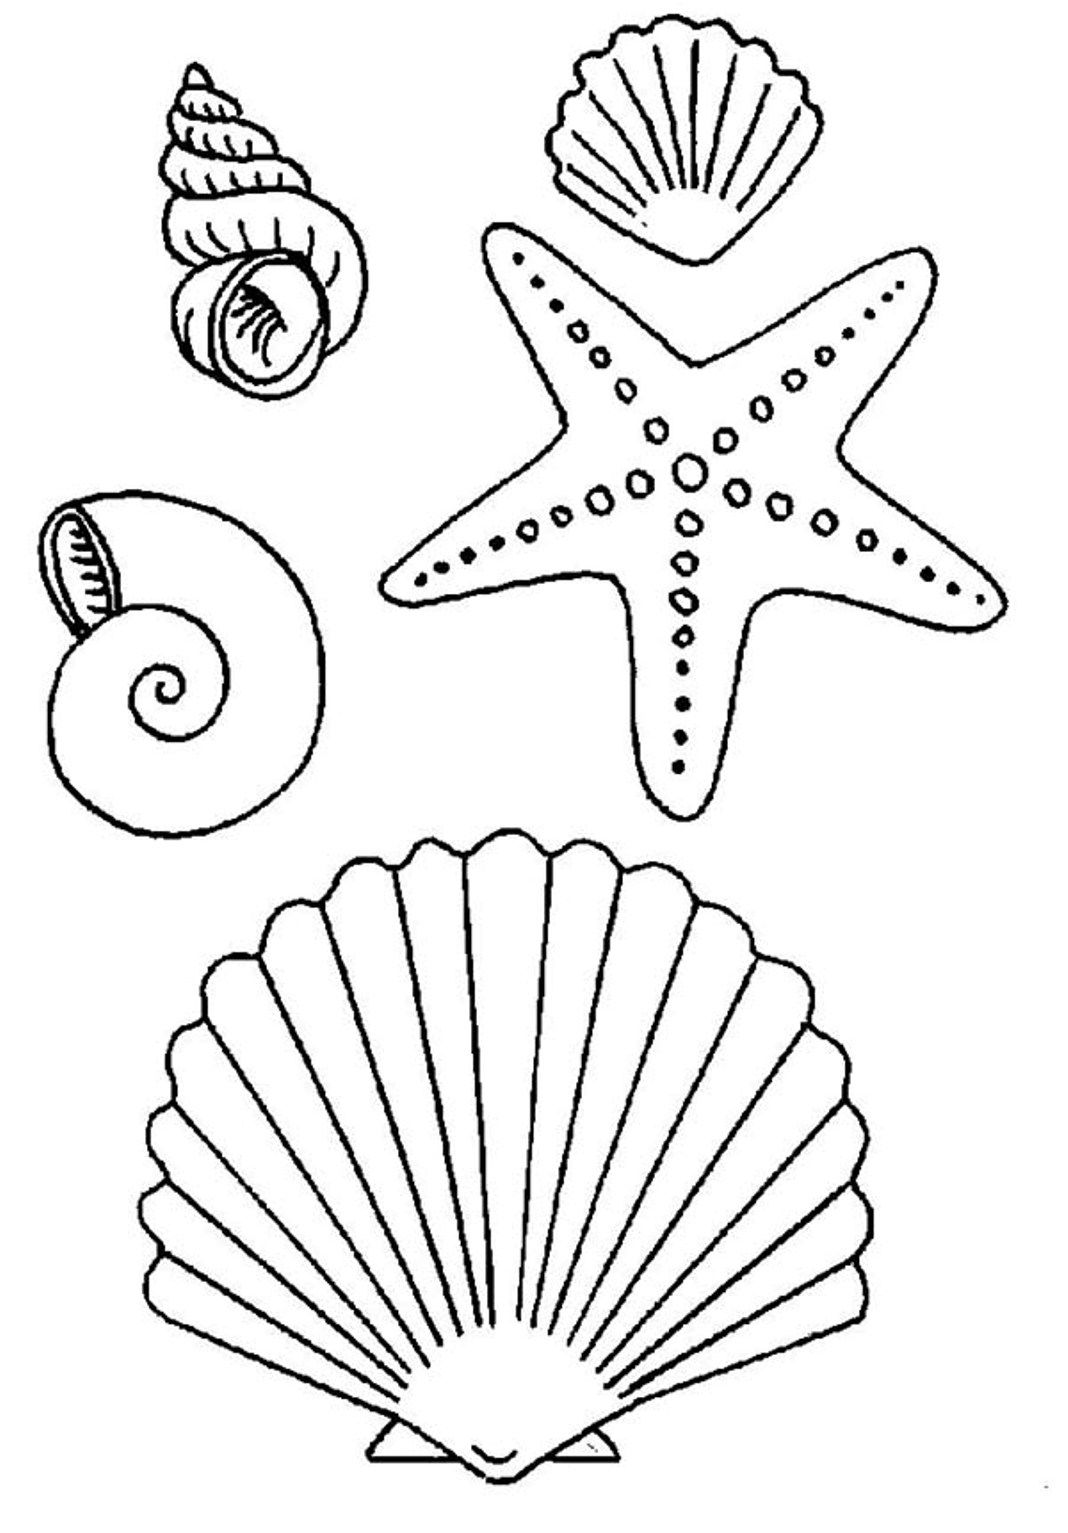 Http Pagestocolor Net 9761 Seashell And Starfish Coloring Pages Seashell And Starfish Coloring Pages Seashell Drawing Fish Coloring Page Coloring Pages